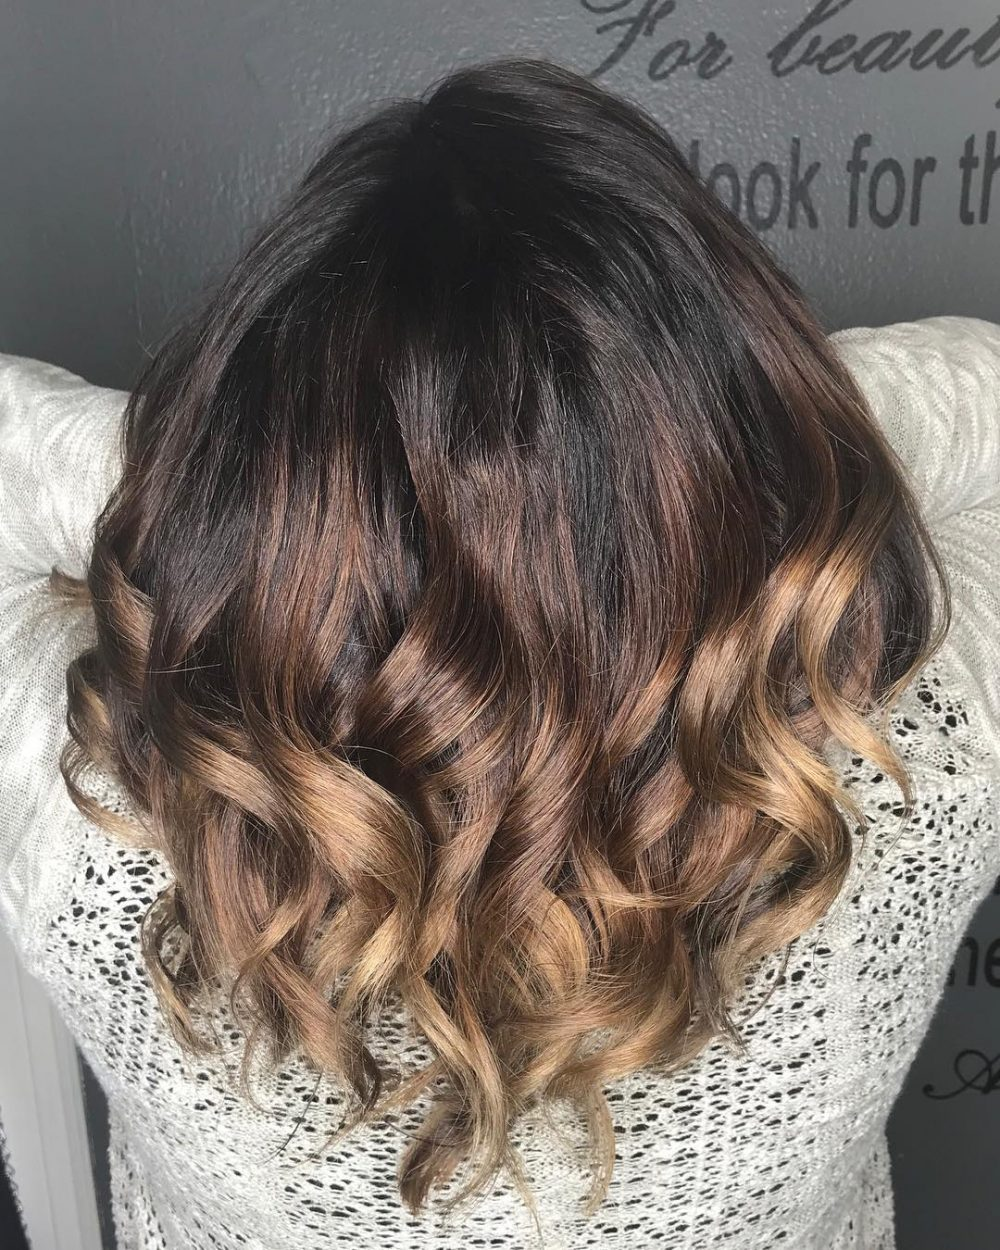 blended-dimension-short-ombre-hair.jpg